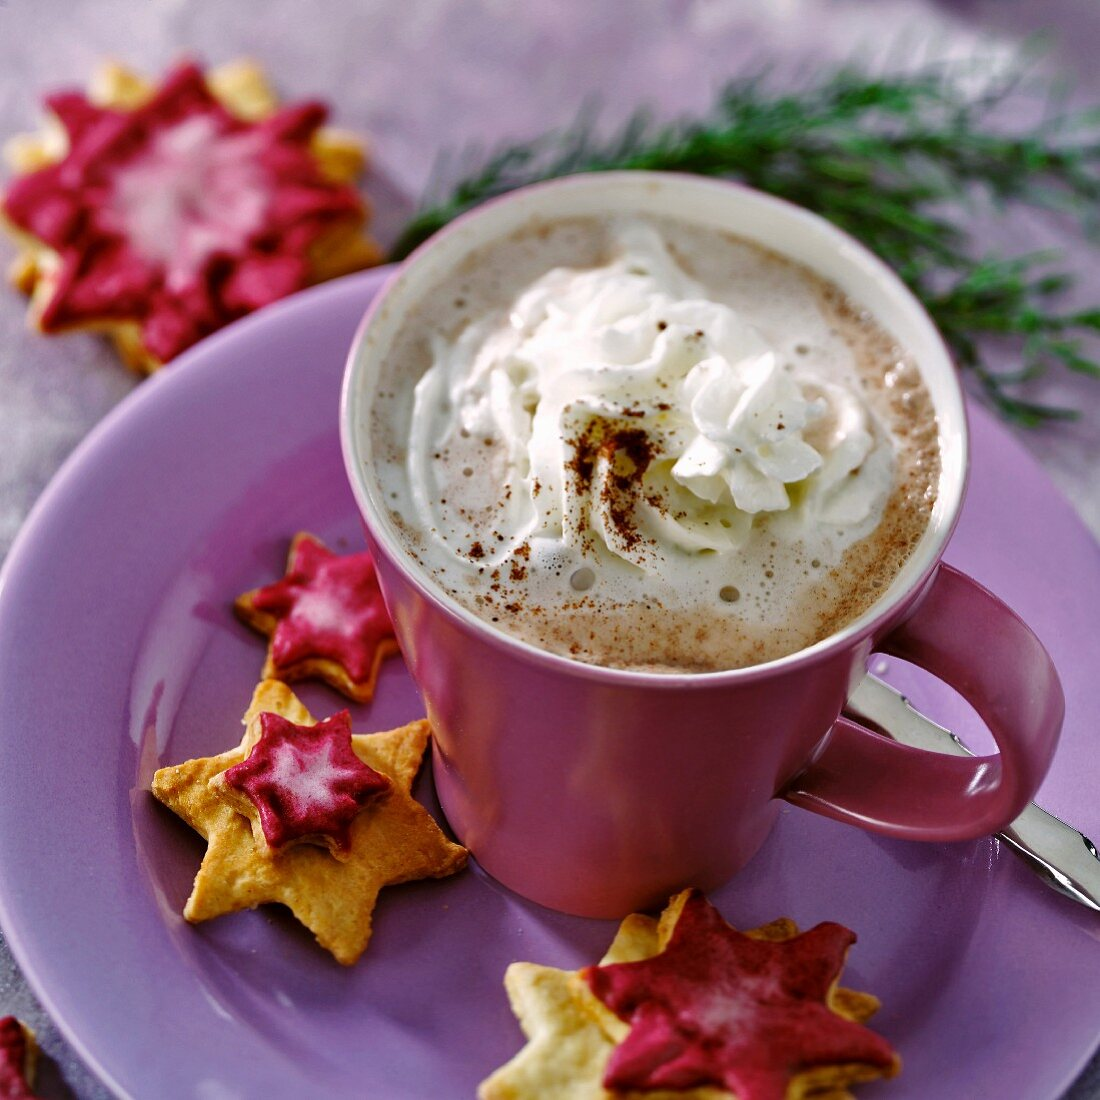 Hot chocolate with star-shaped biscuits